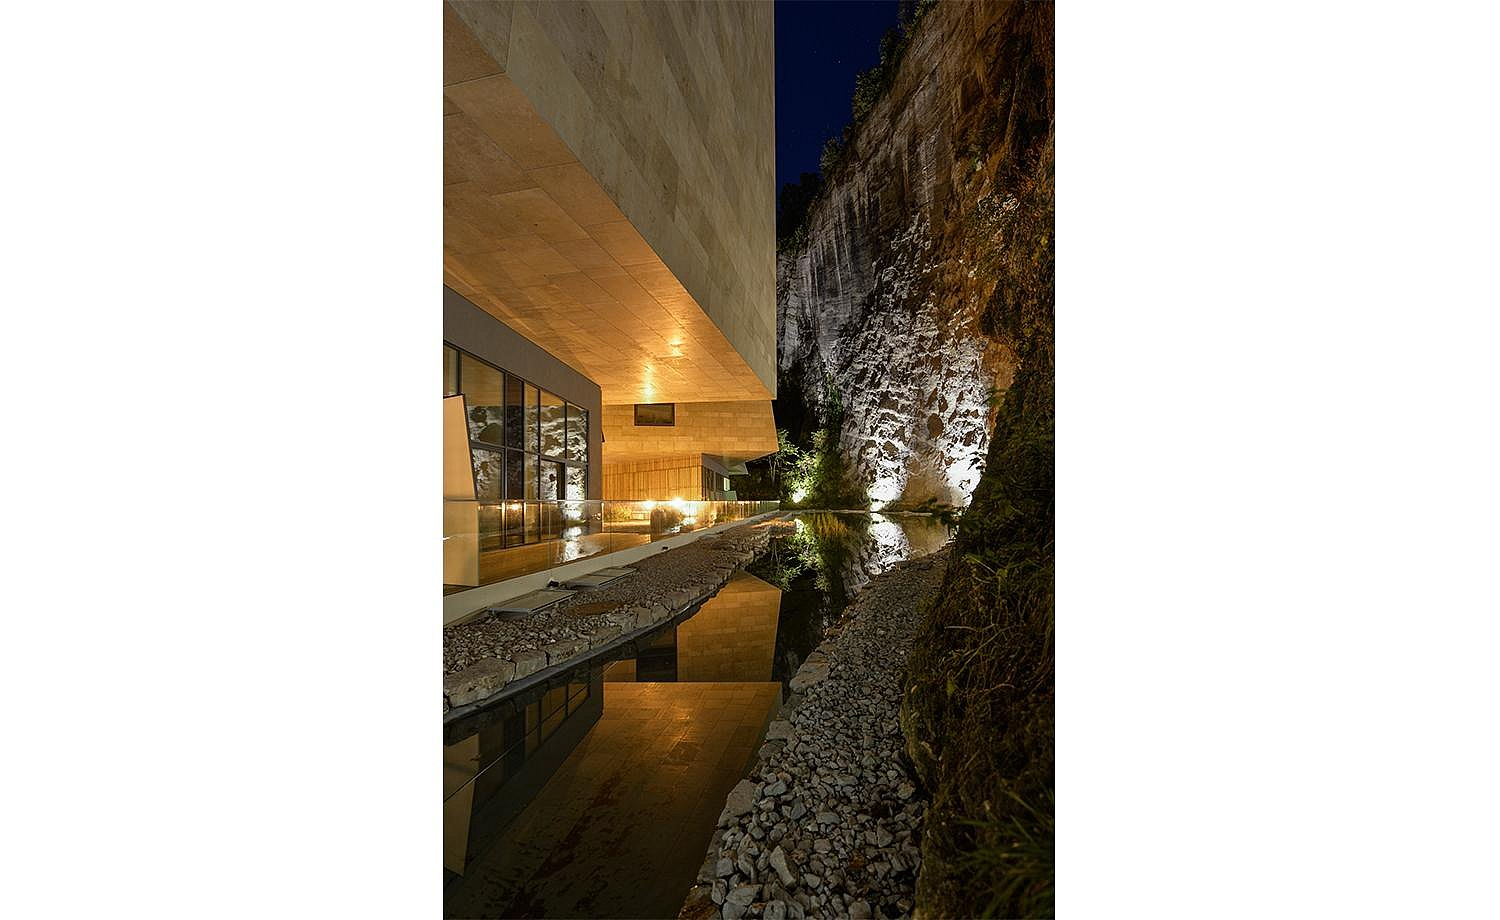 Exterior view at night: modern structures are reflected in the pond in front of the rock face